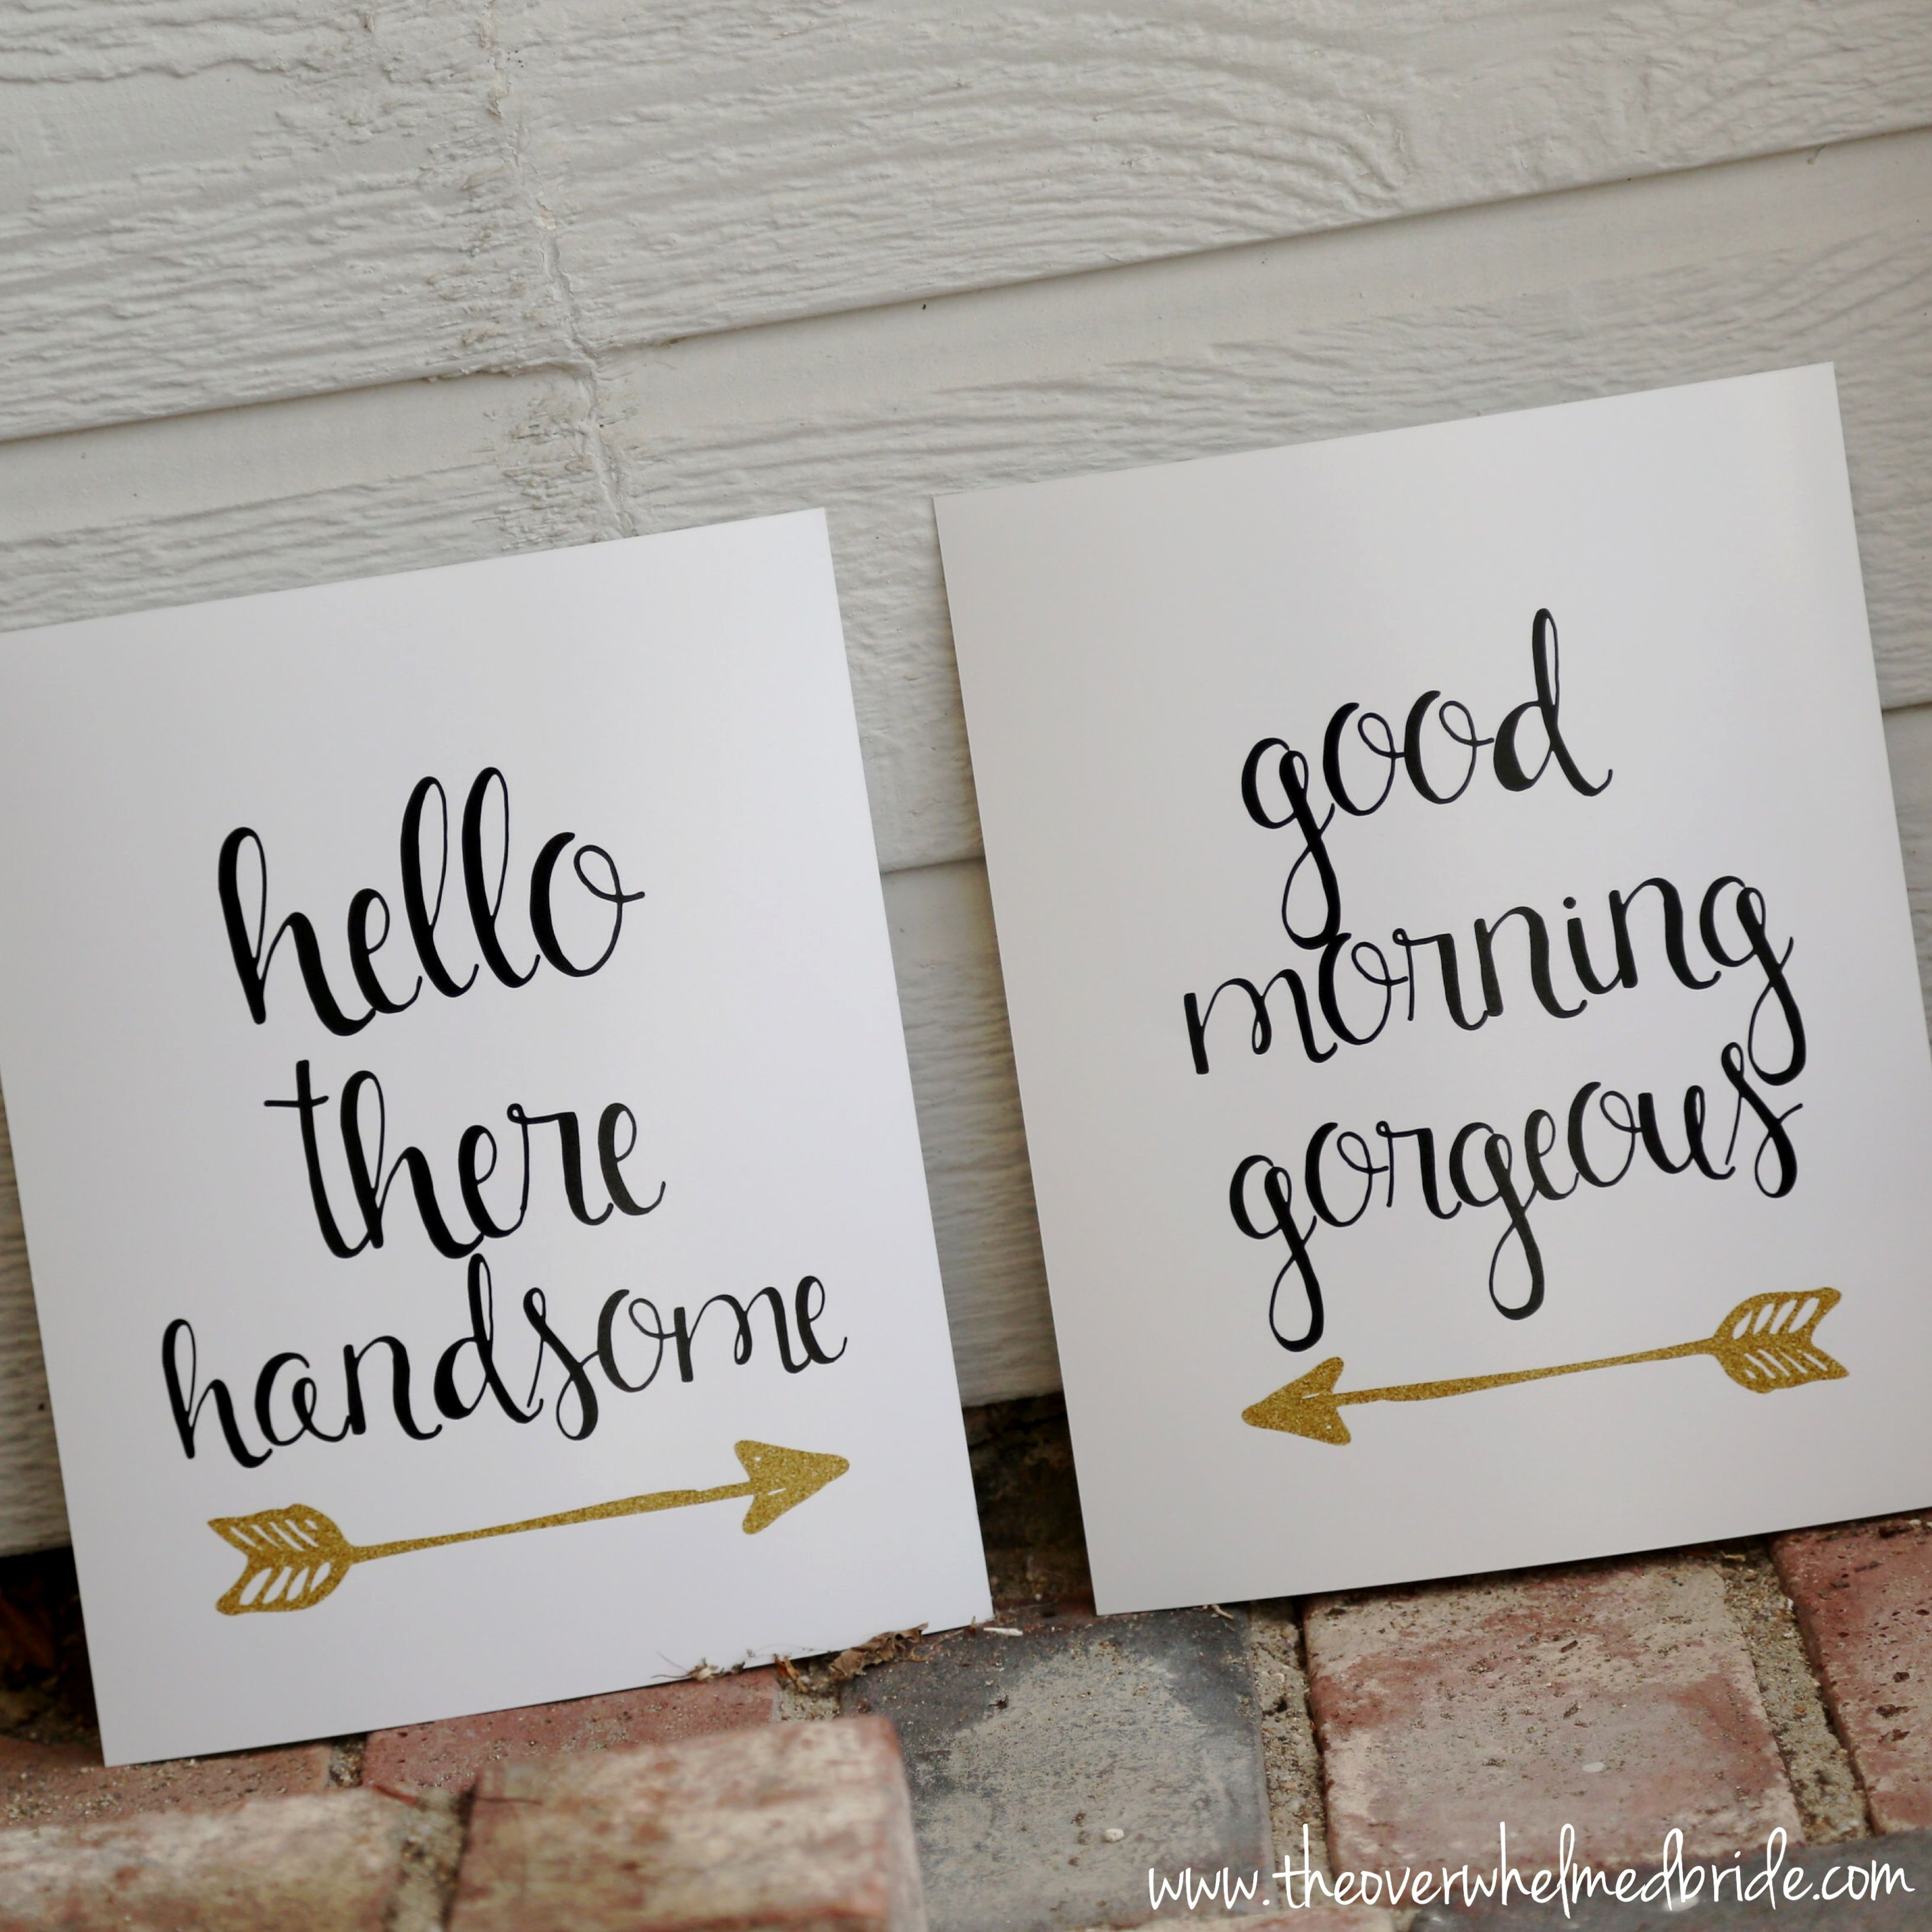 Today On The Bridal Boutique // Newlywed Home Decor By Simply Sweet Designs